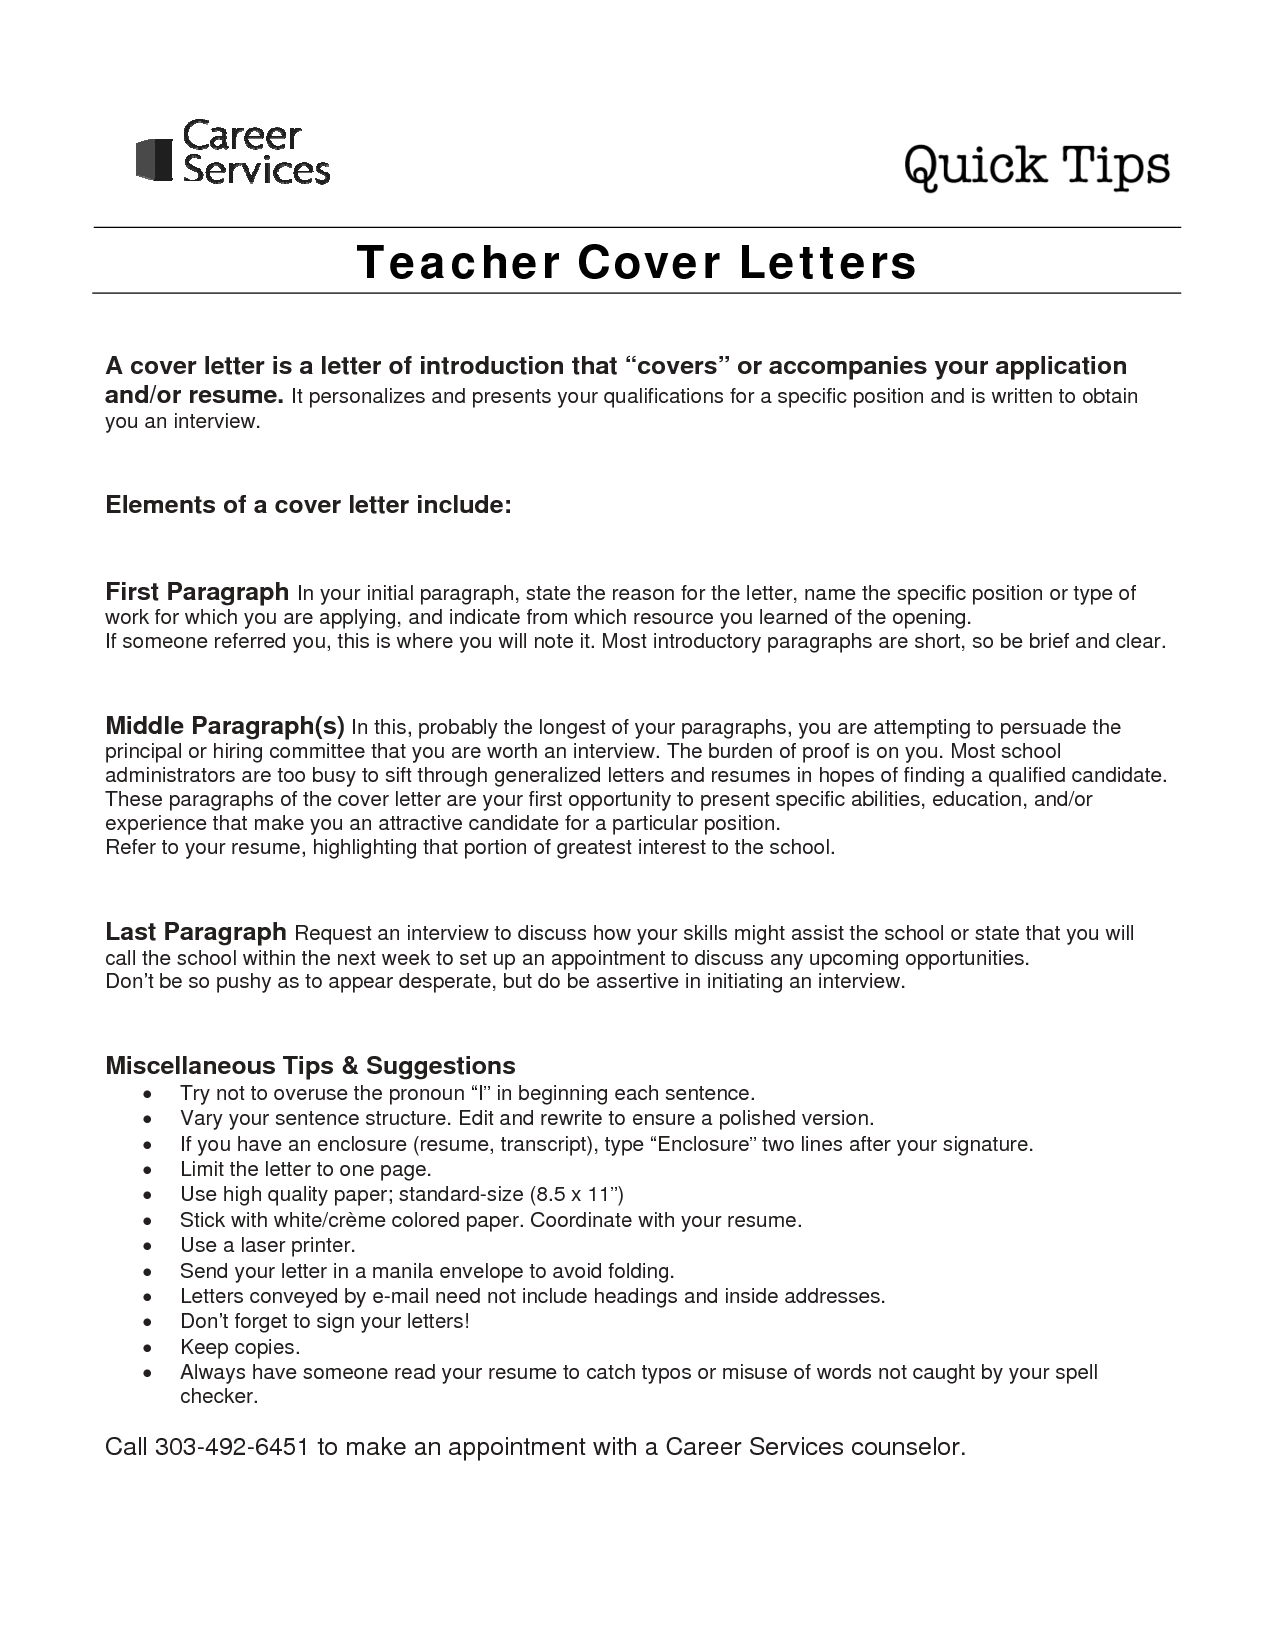 cover letter so you leaves impression resumesdesign com is decided for an application and cv co are ready to send usually a difficult taskremains the writing of the letter of motivation this is the most